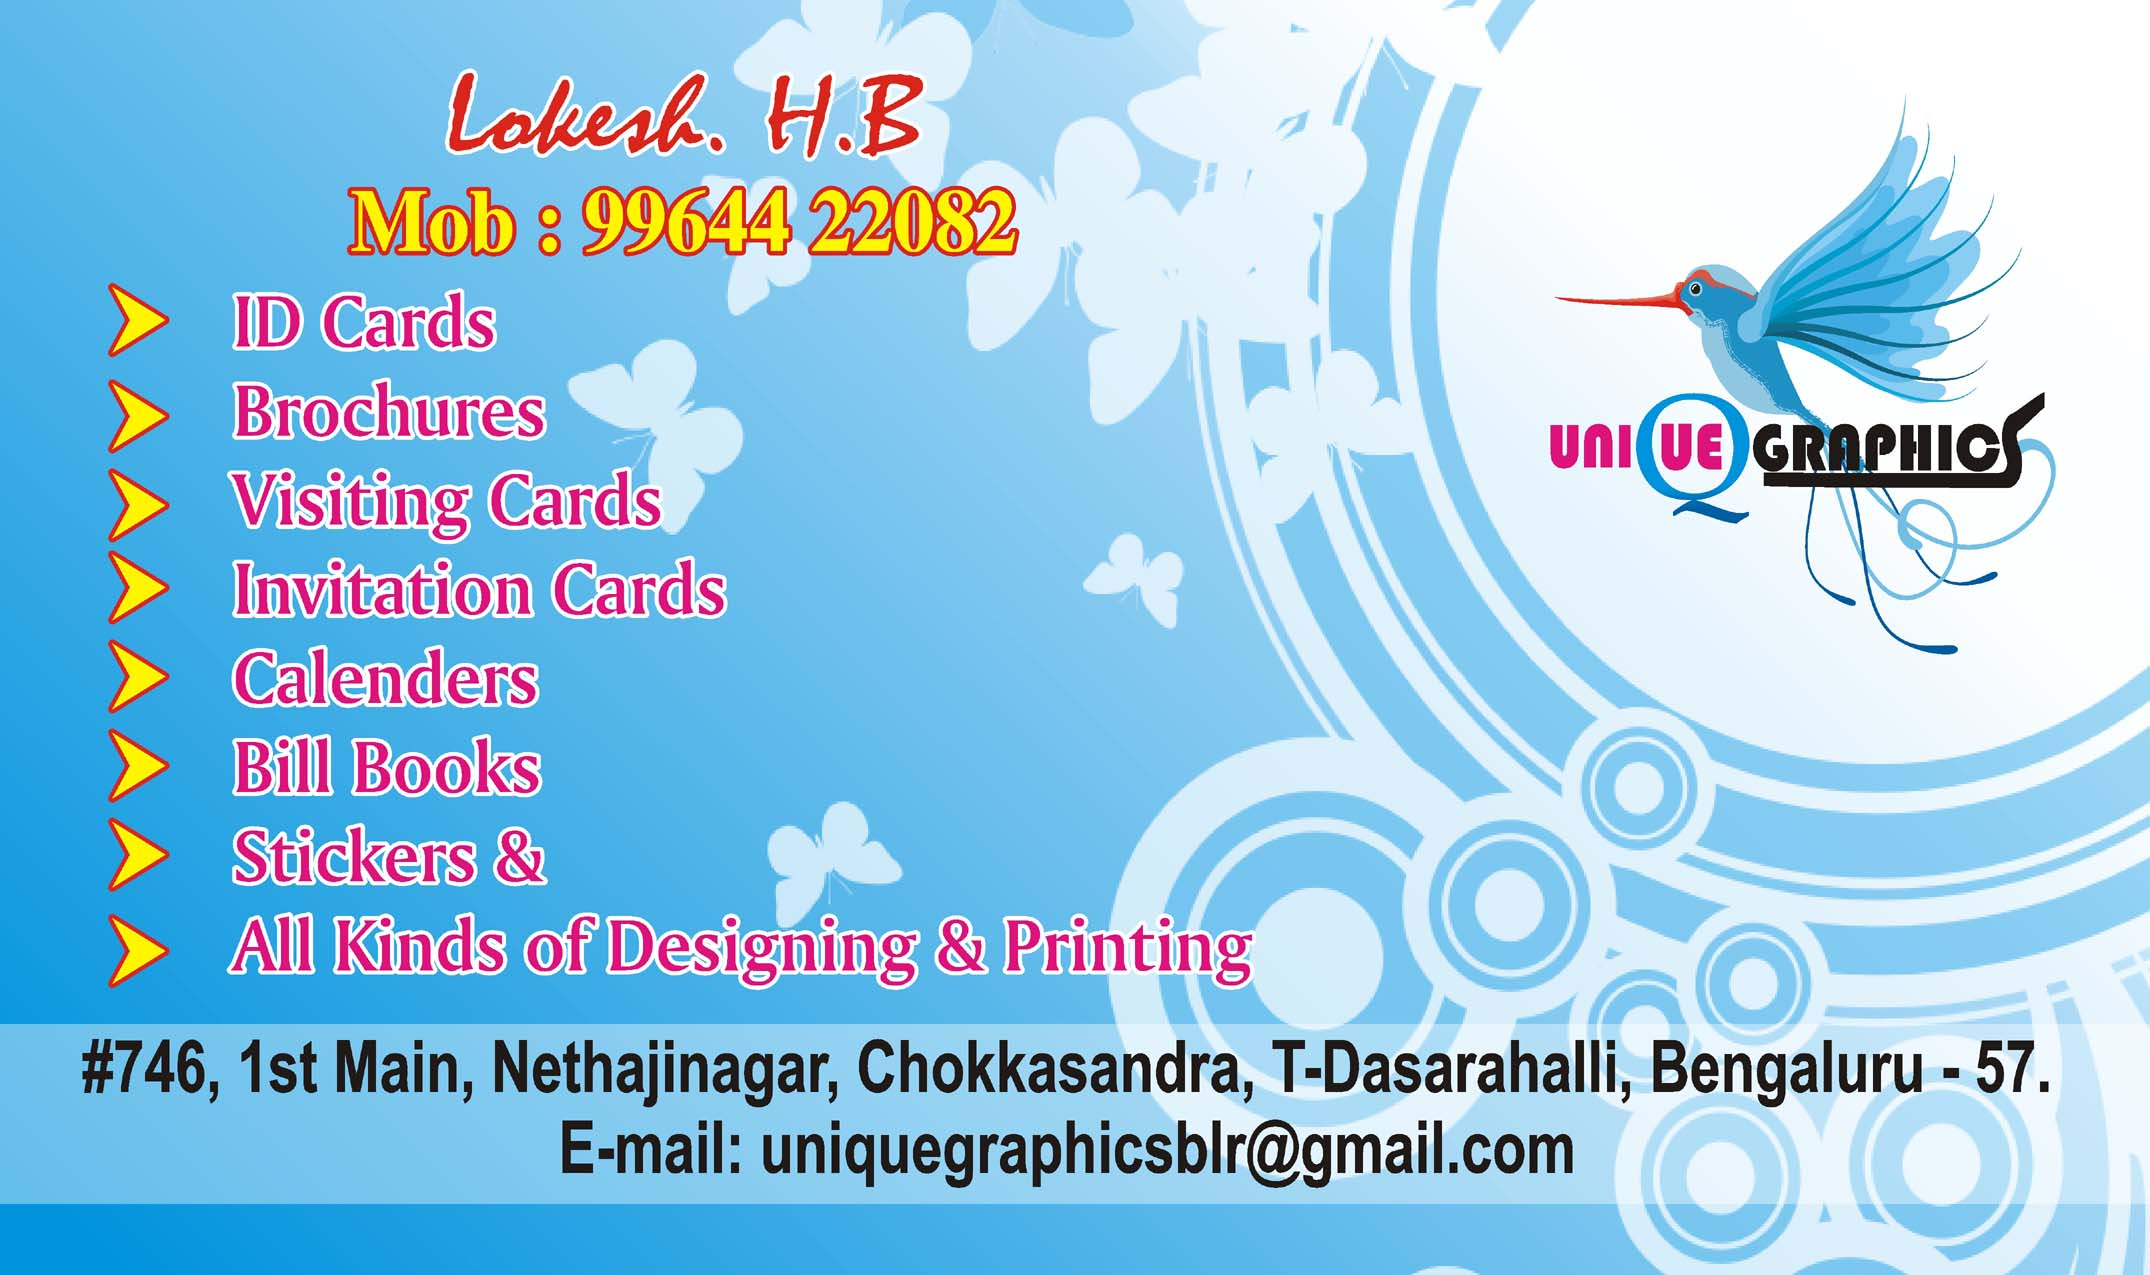 Brochures printing in bangalore dating 3